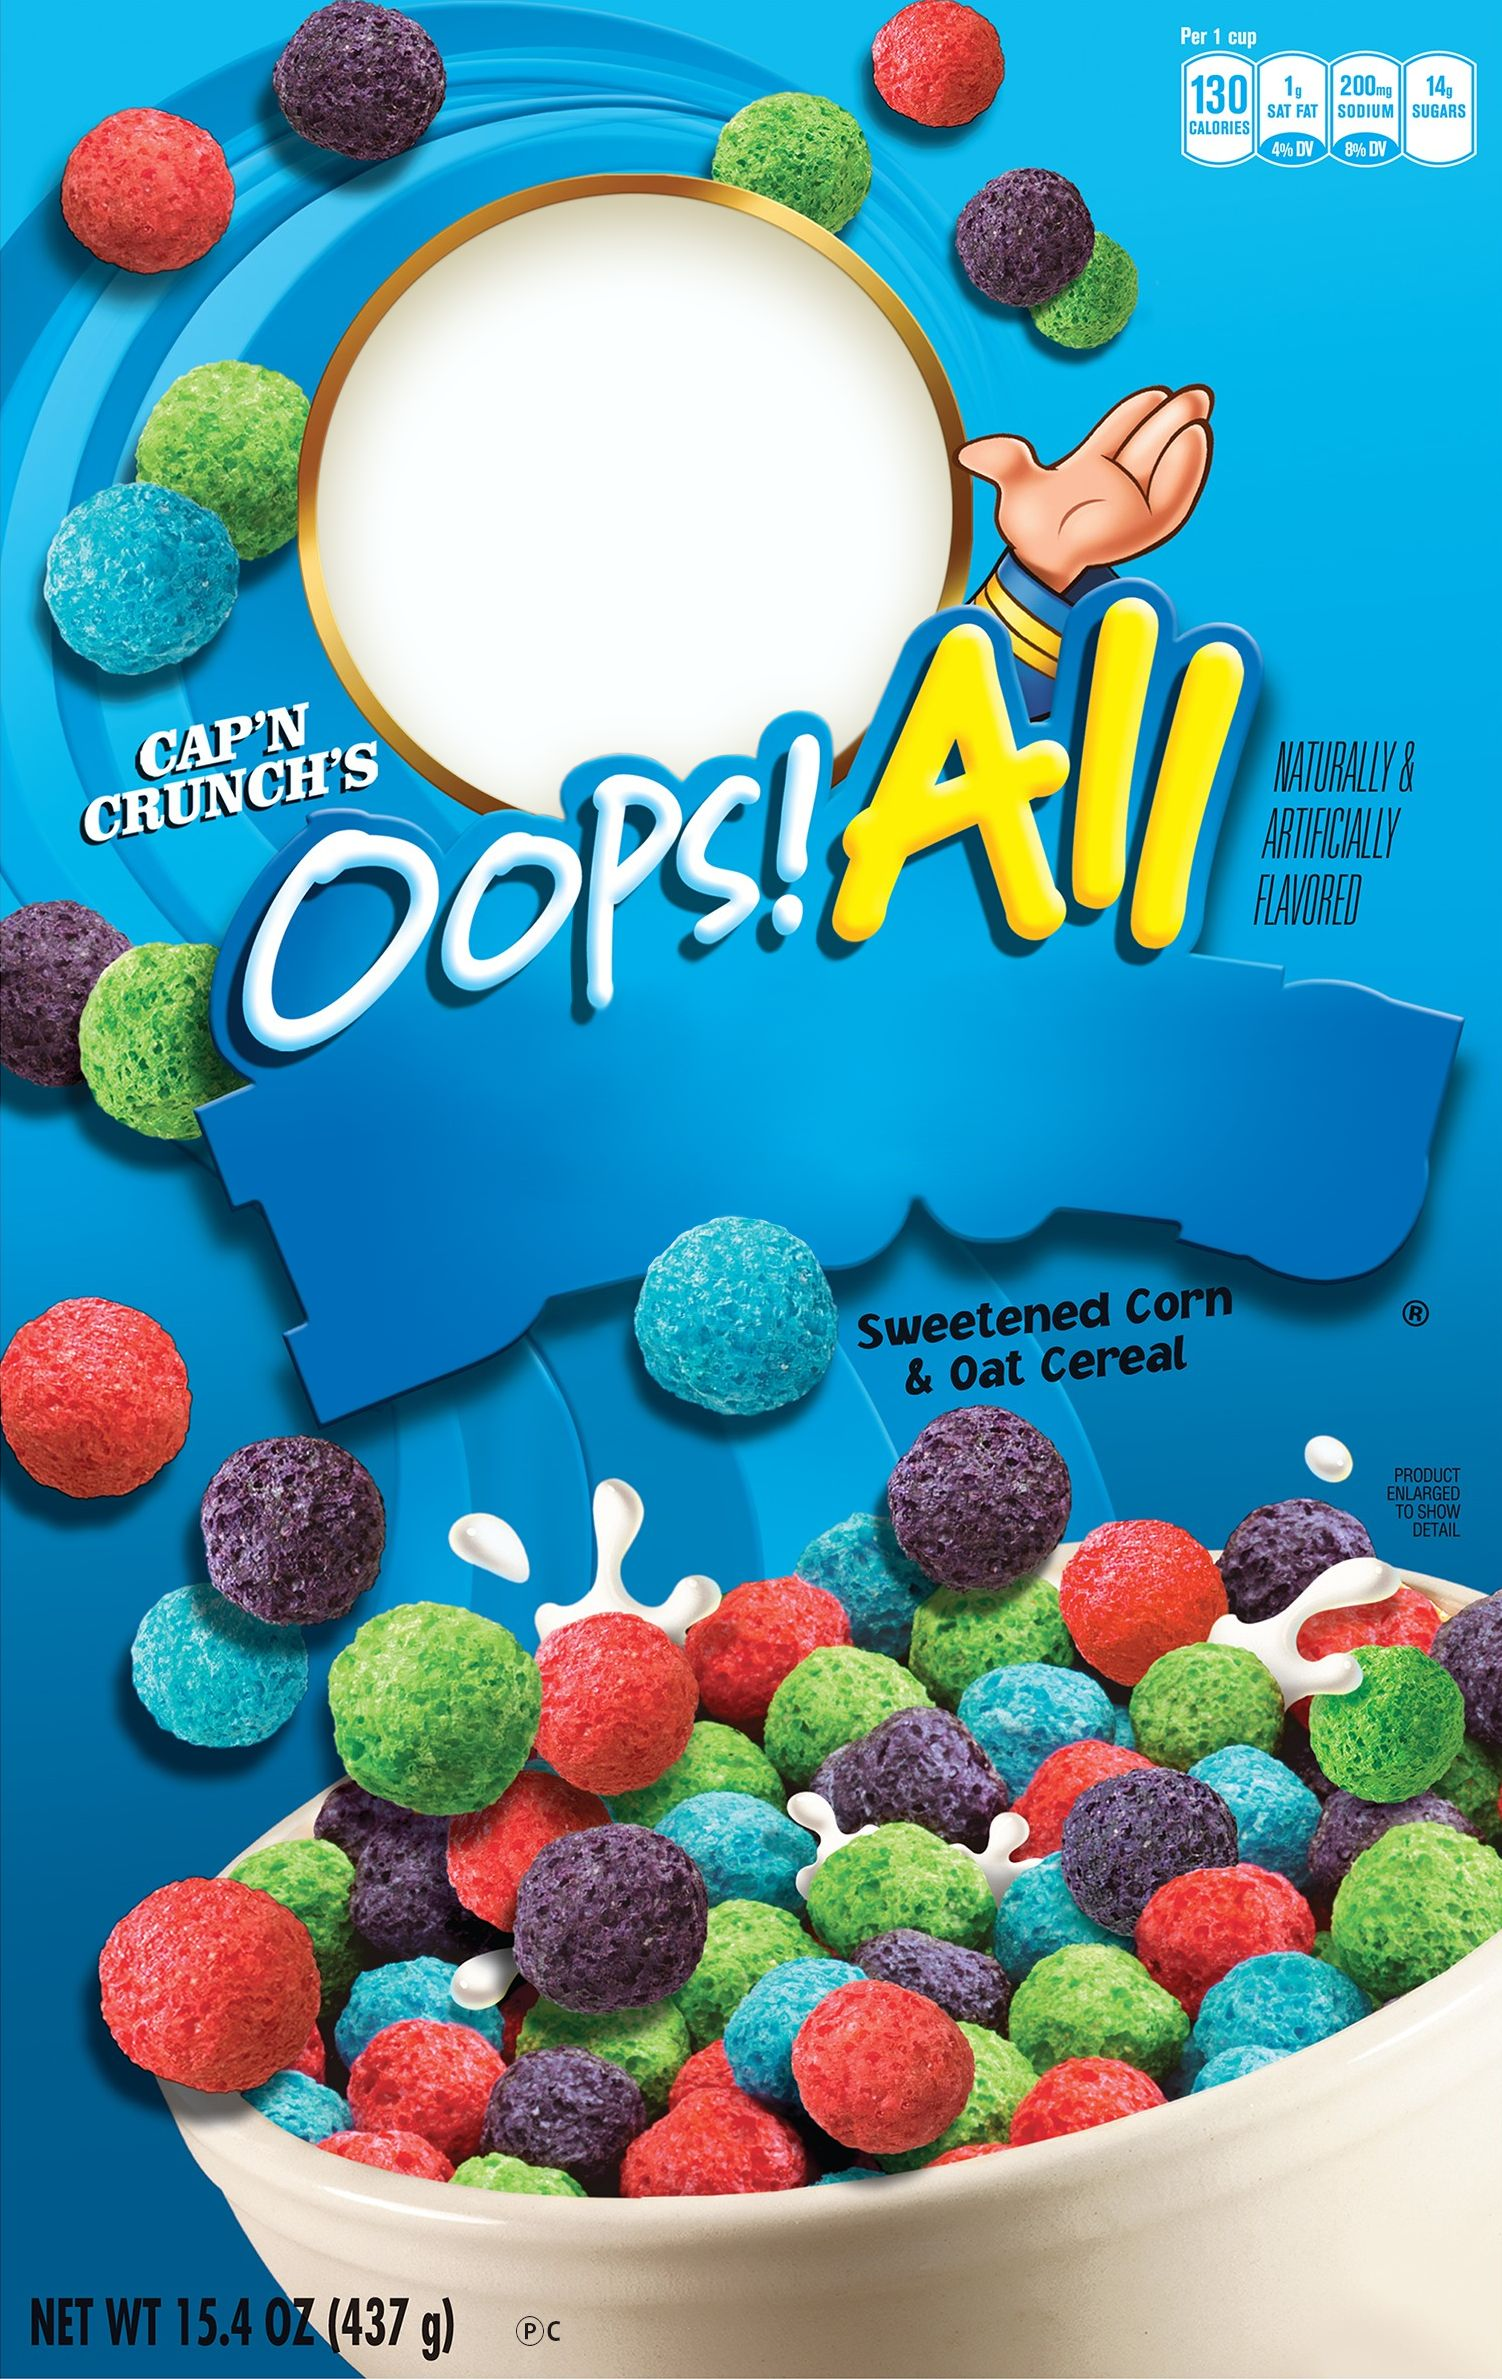 Oops All Berries Blank Template Imgflip Most often, this applies when an individual has missed some cue to stop, thus creating a useless or bothersome excess. oops all berries blank template imgflip